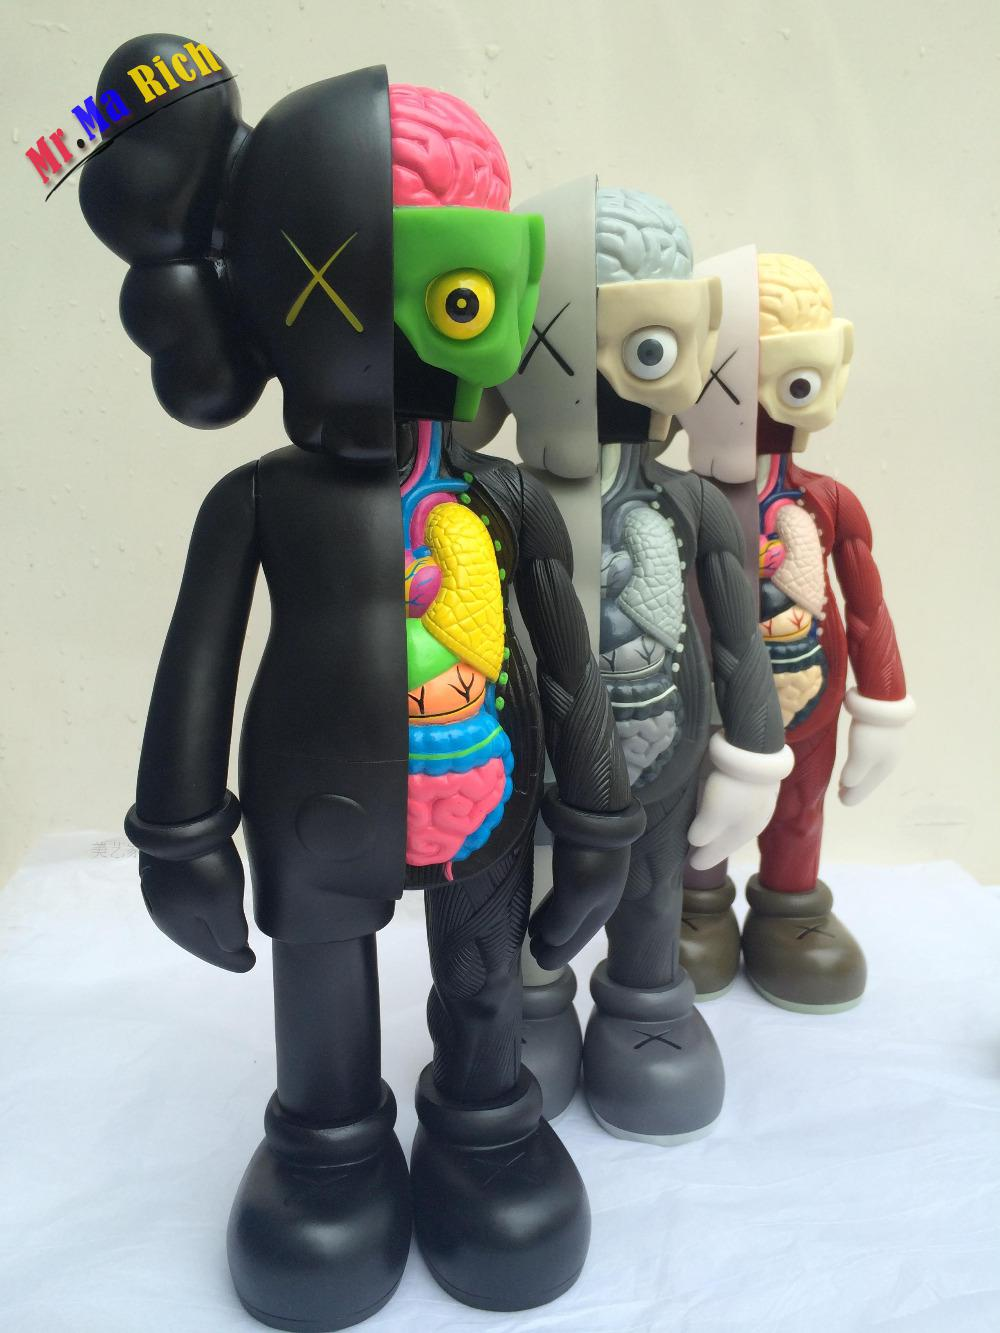 Madness Promotion ! 16inch Kaws Dissected Companion Kaws Original Fake Action Figure hot selling 38cm originafake kaws companion astro boy high quality action collection